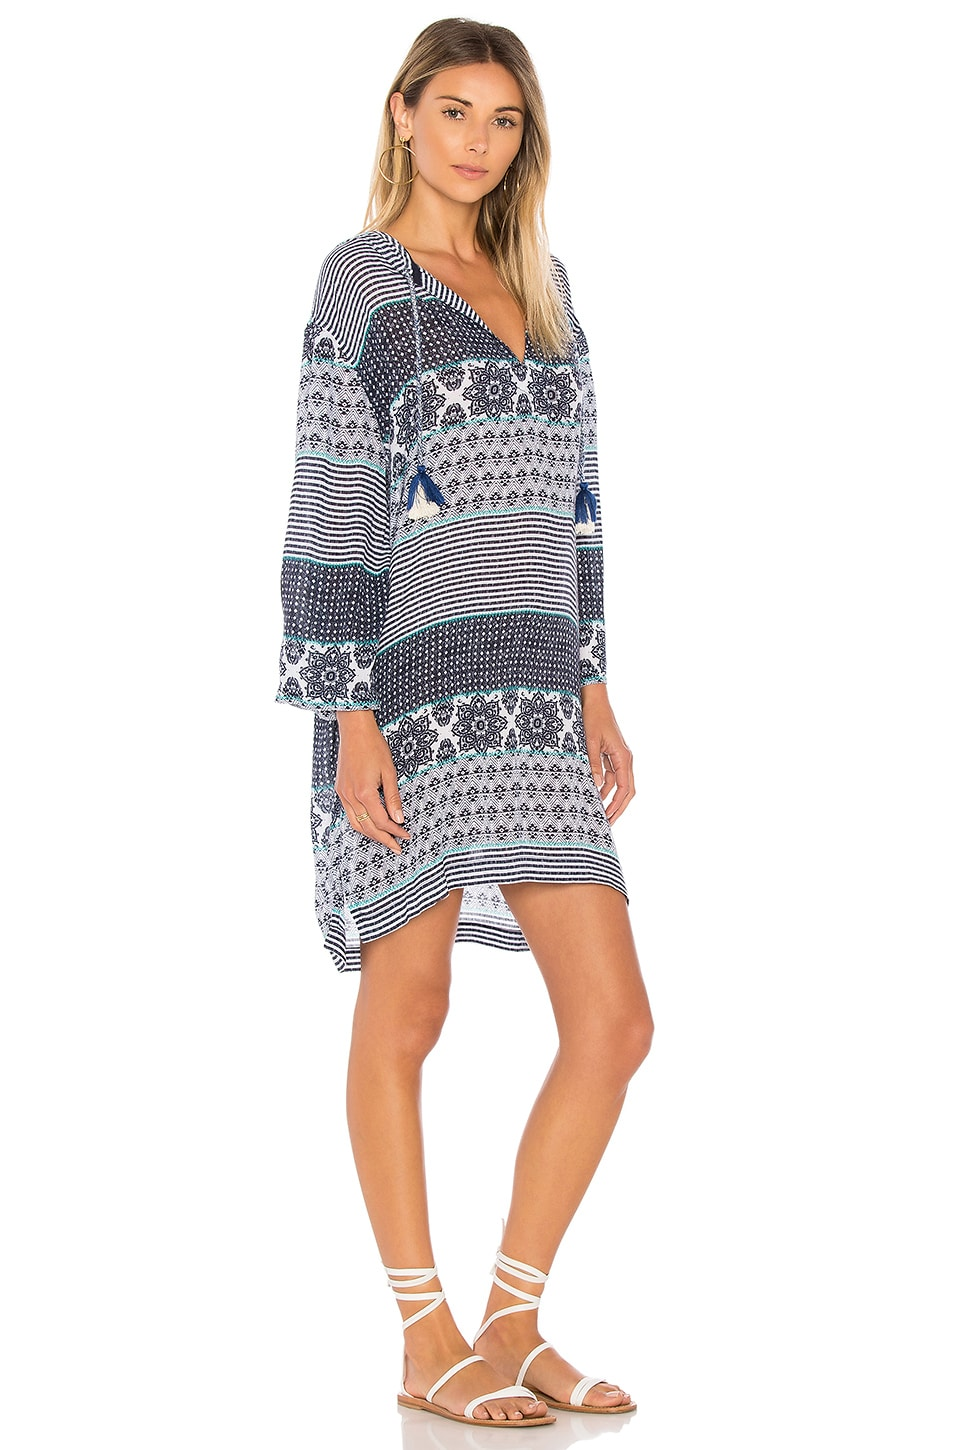 Spliced Hooded Dress by Seafolly Swimwear